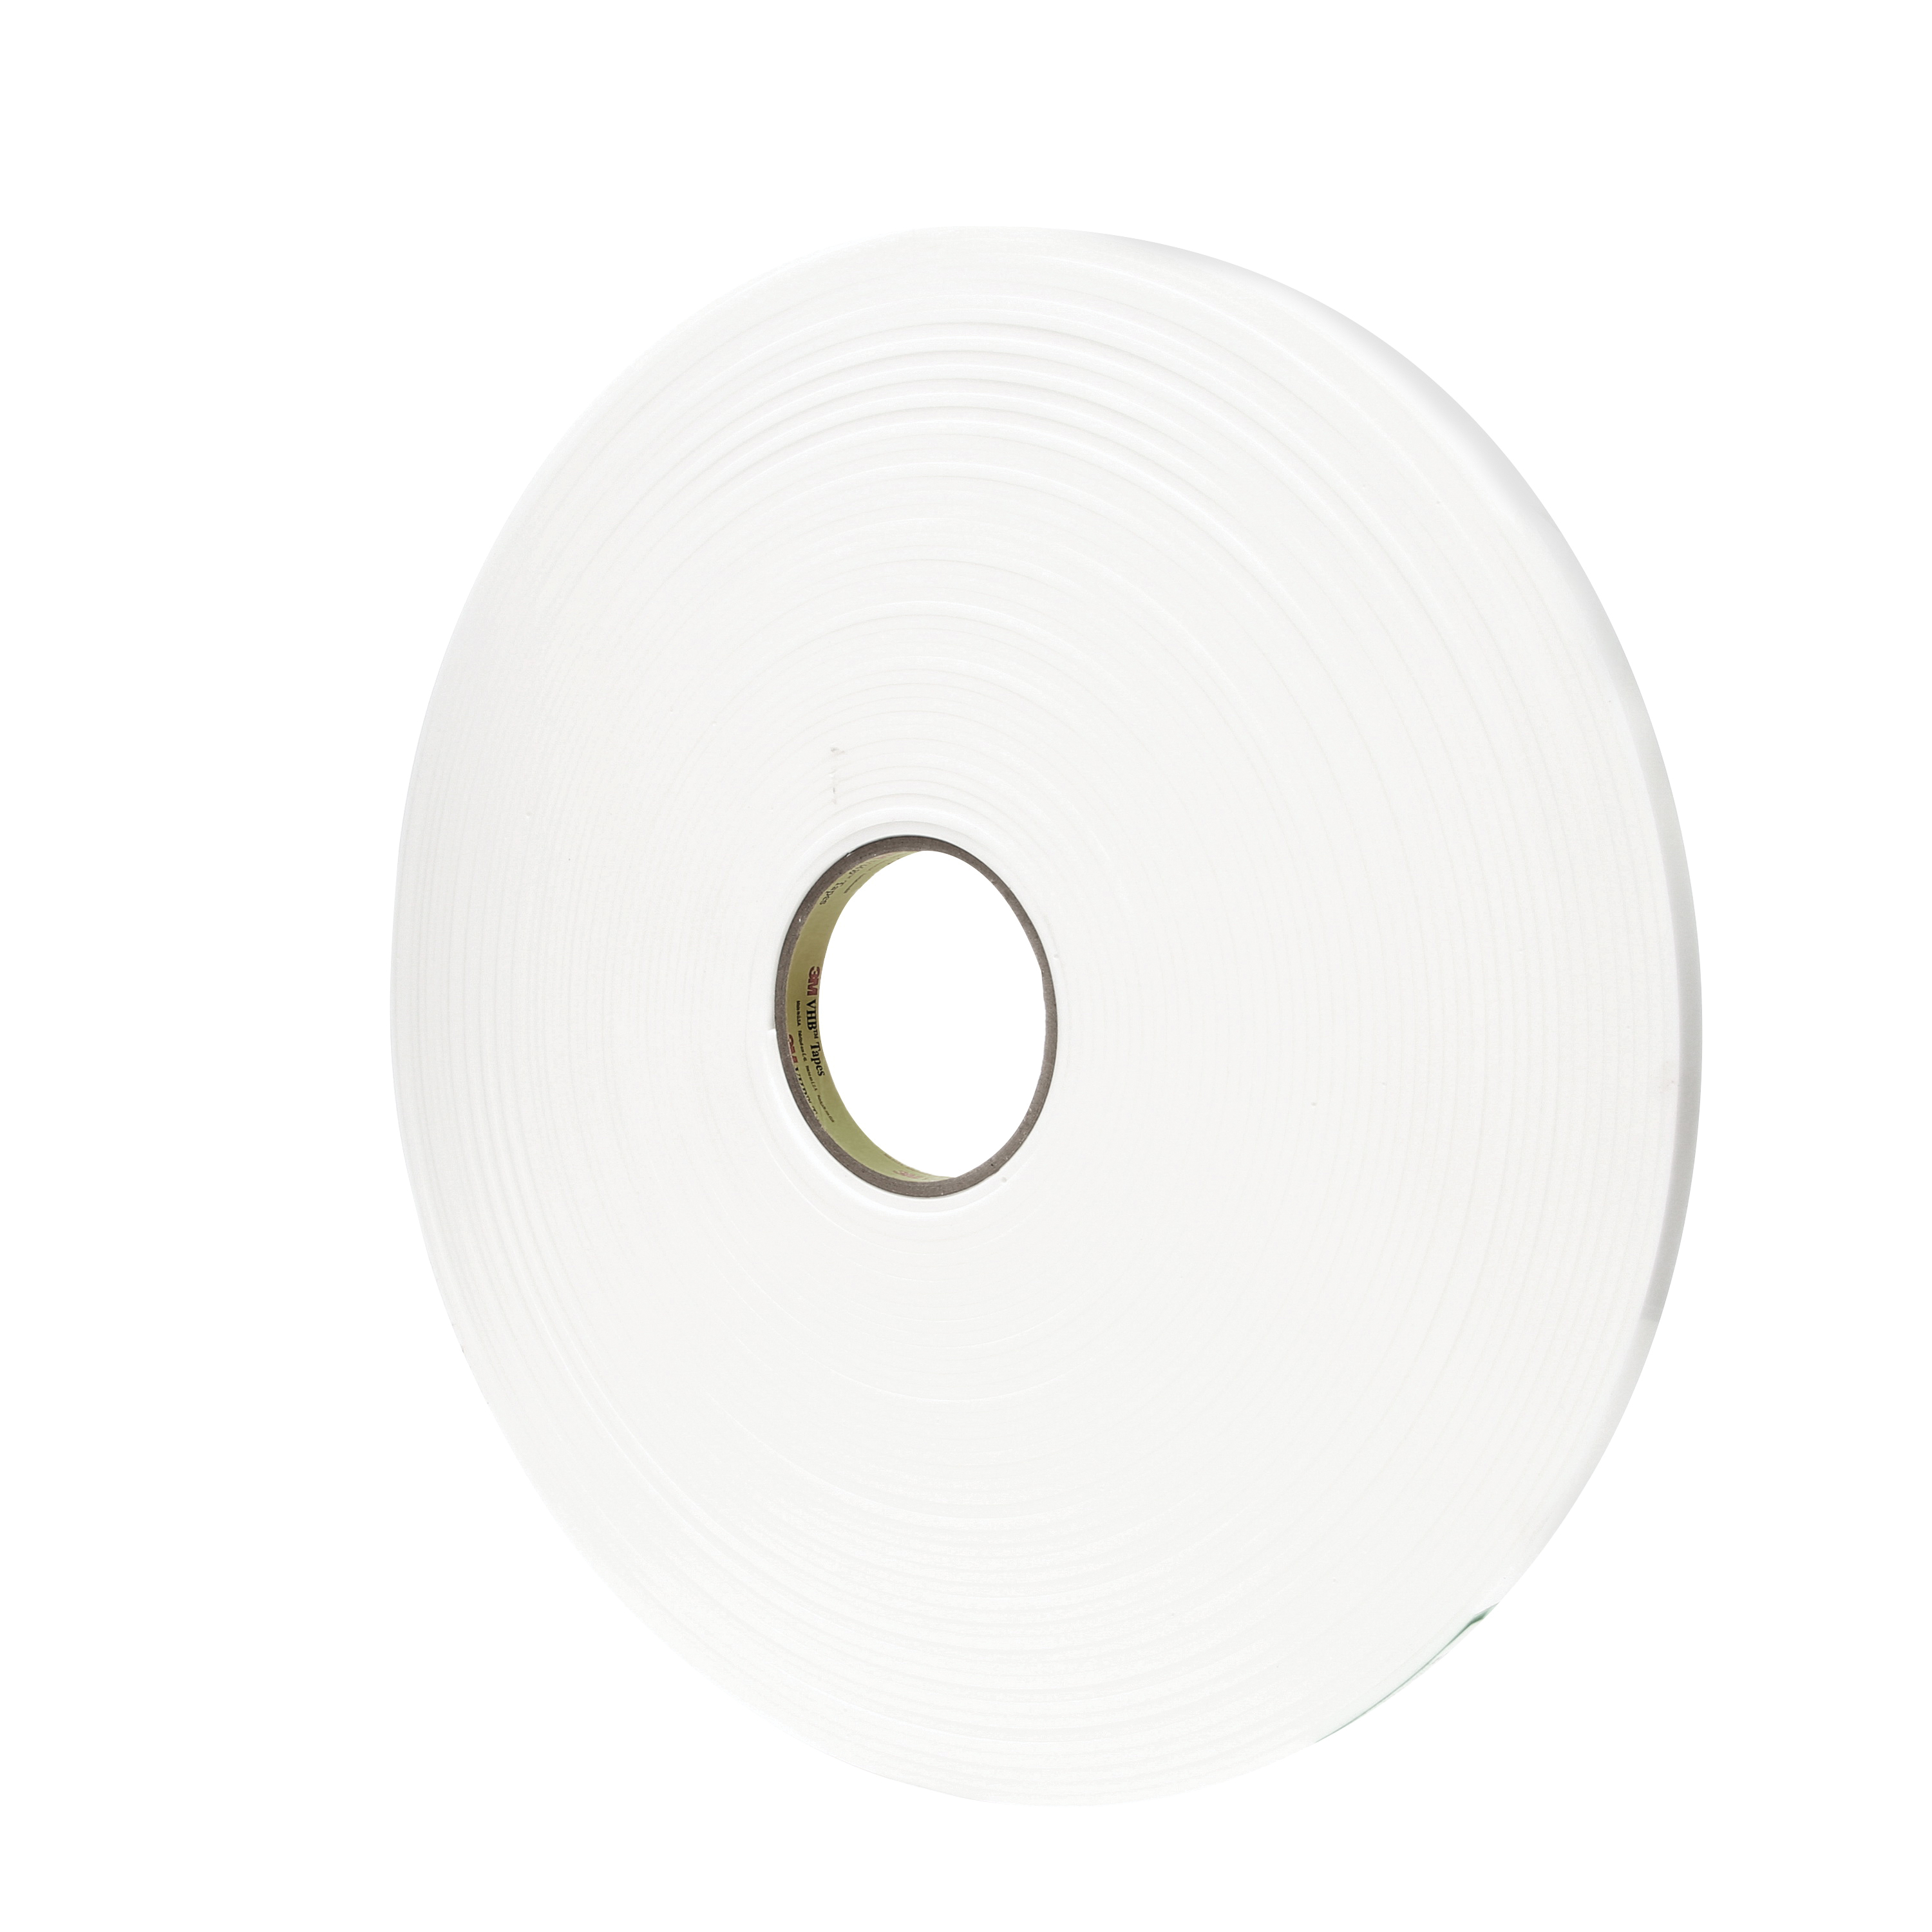 3M™ VHB™ 021200-67503 Pressure Sensitive Double Sided Bonding Tape, 36 yd L x 1/2 in W, 0.12 in THK, General Purpose Acrylic Adhesive, Acrylic Foam Backing, White